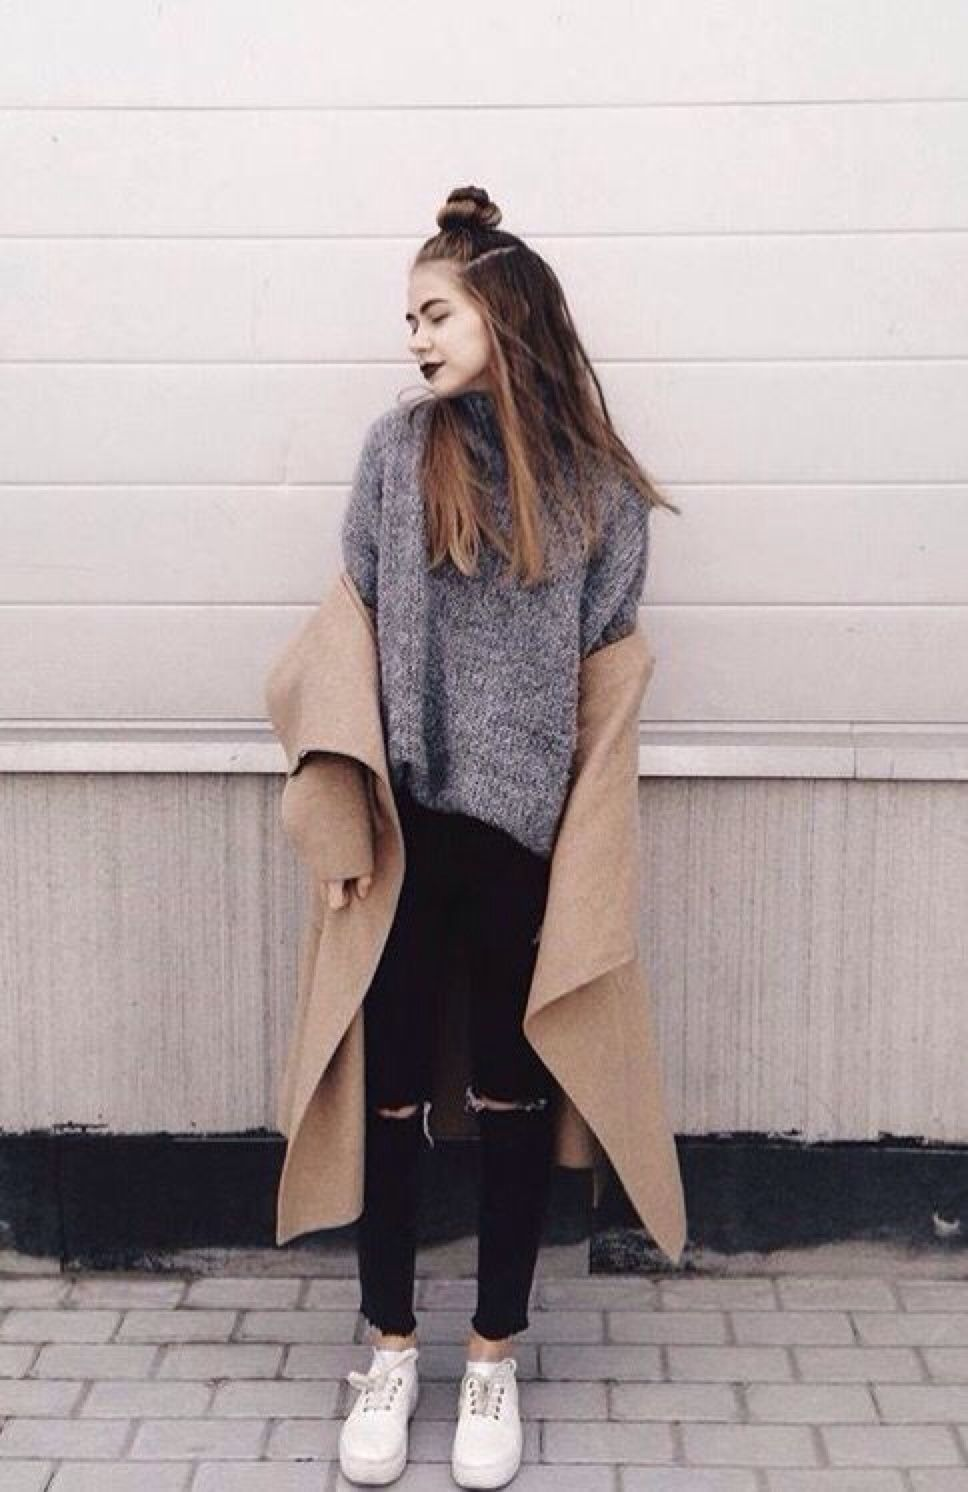 Grunge Street Outfit For Winter Fashion Street Grunge Fashion And Style Women Fashion Winter